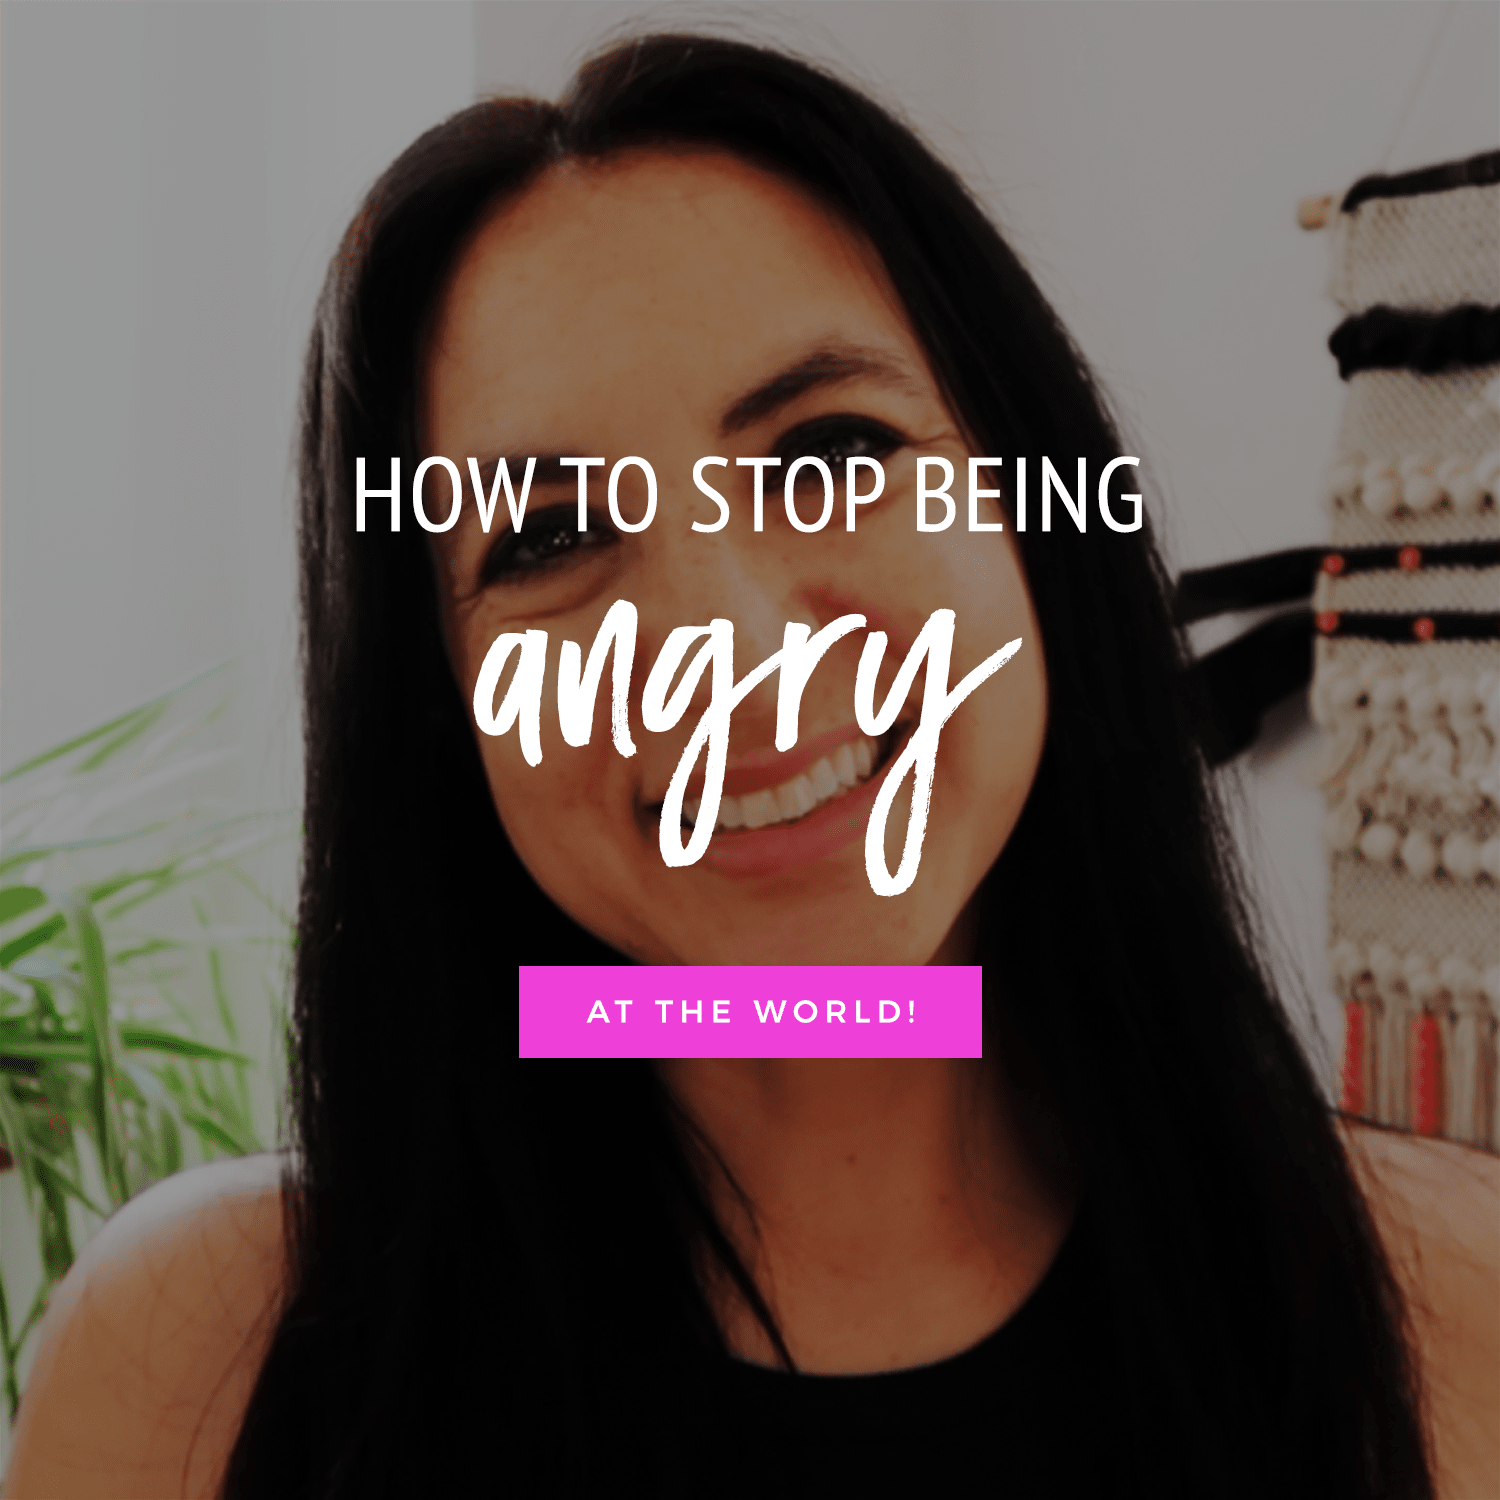 How To Stop Being Angry At The World!